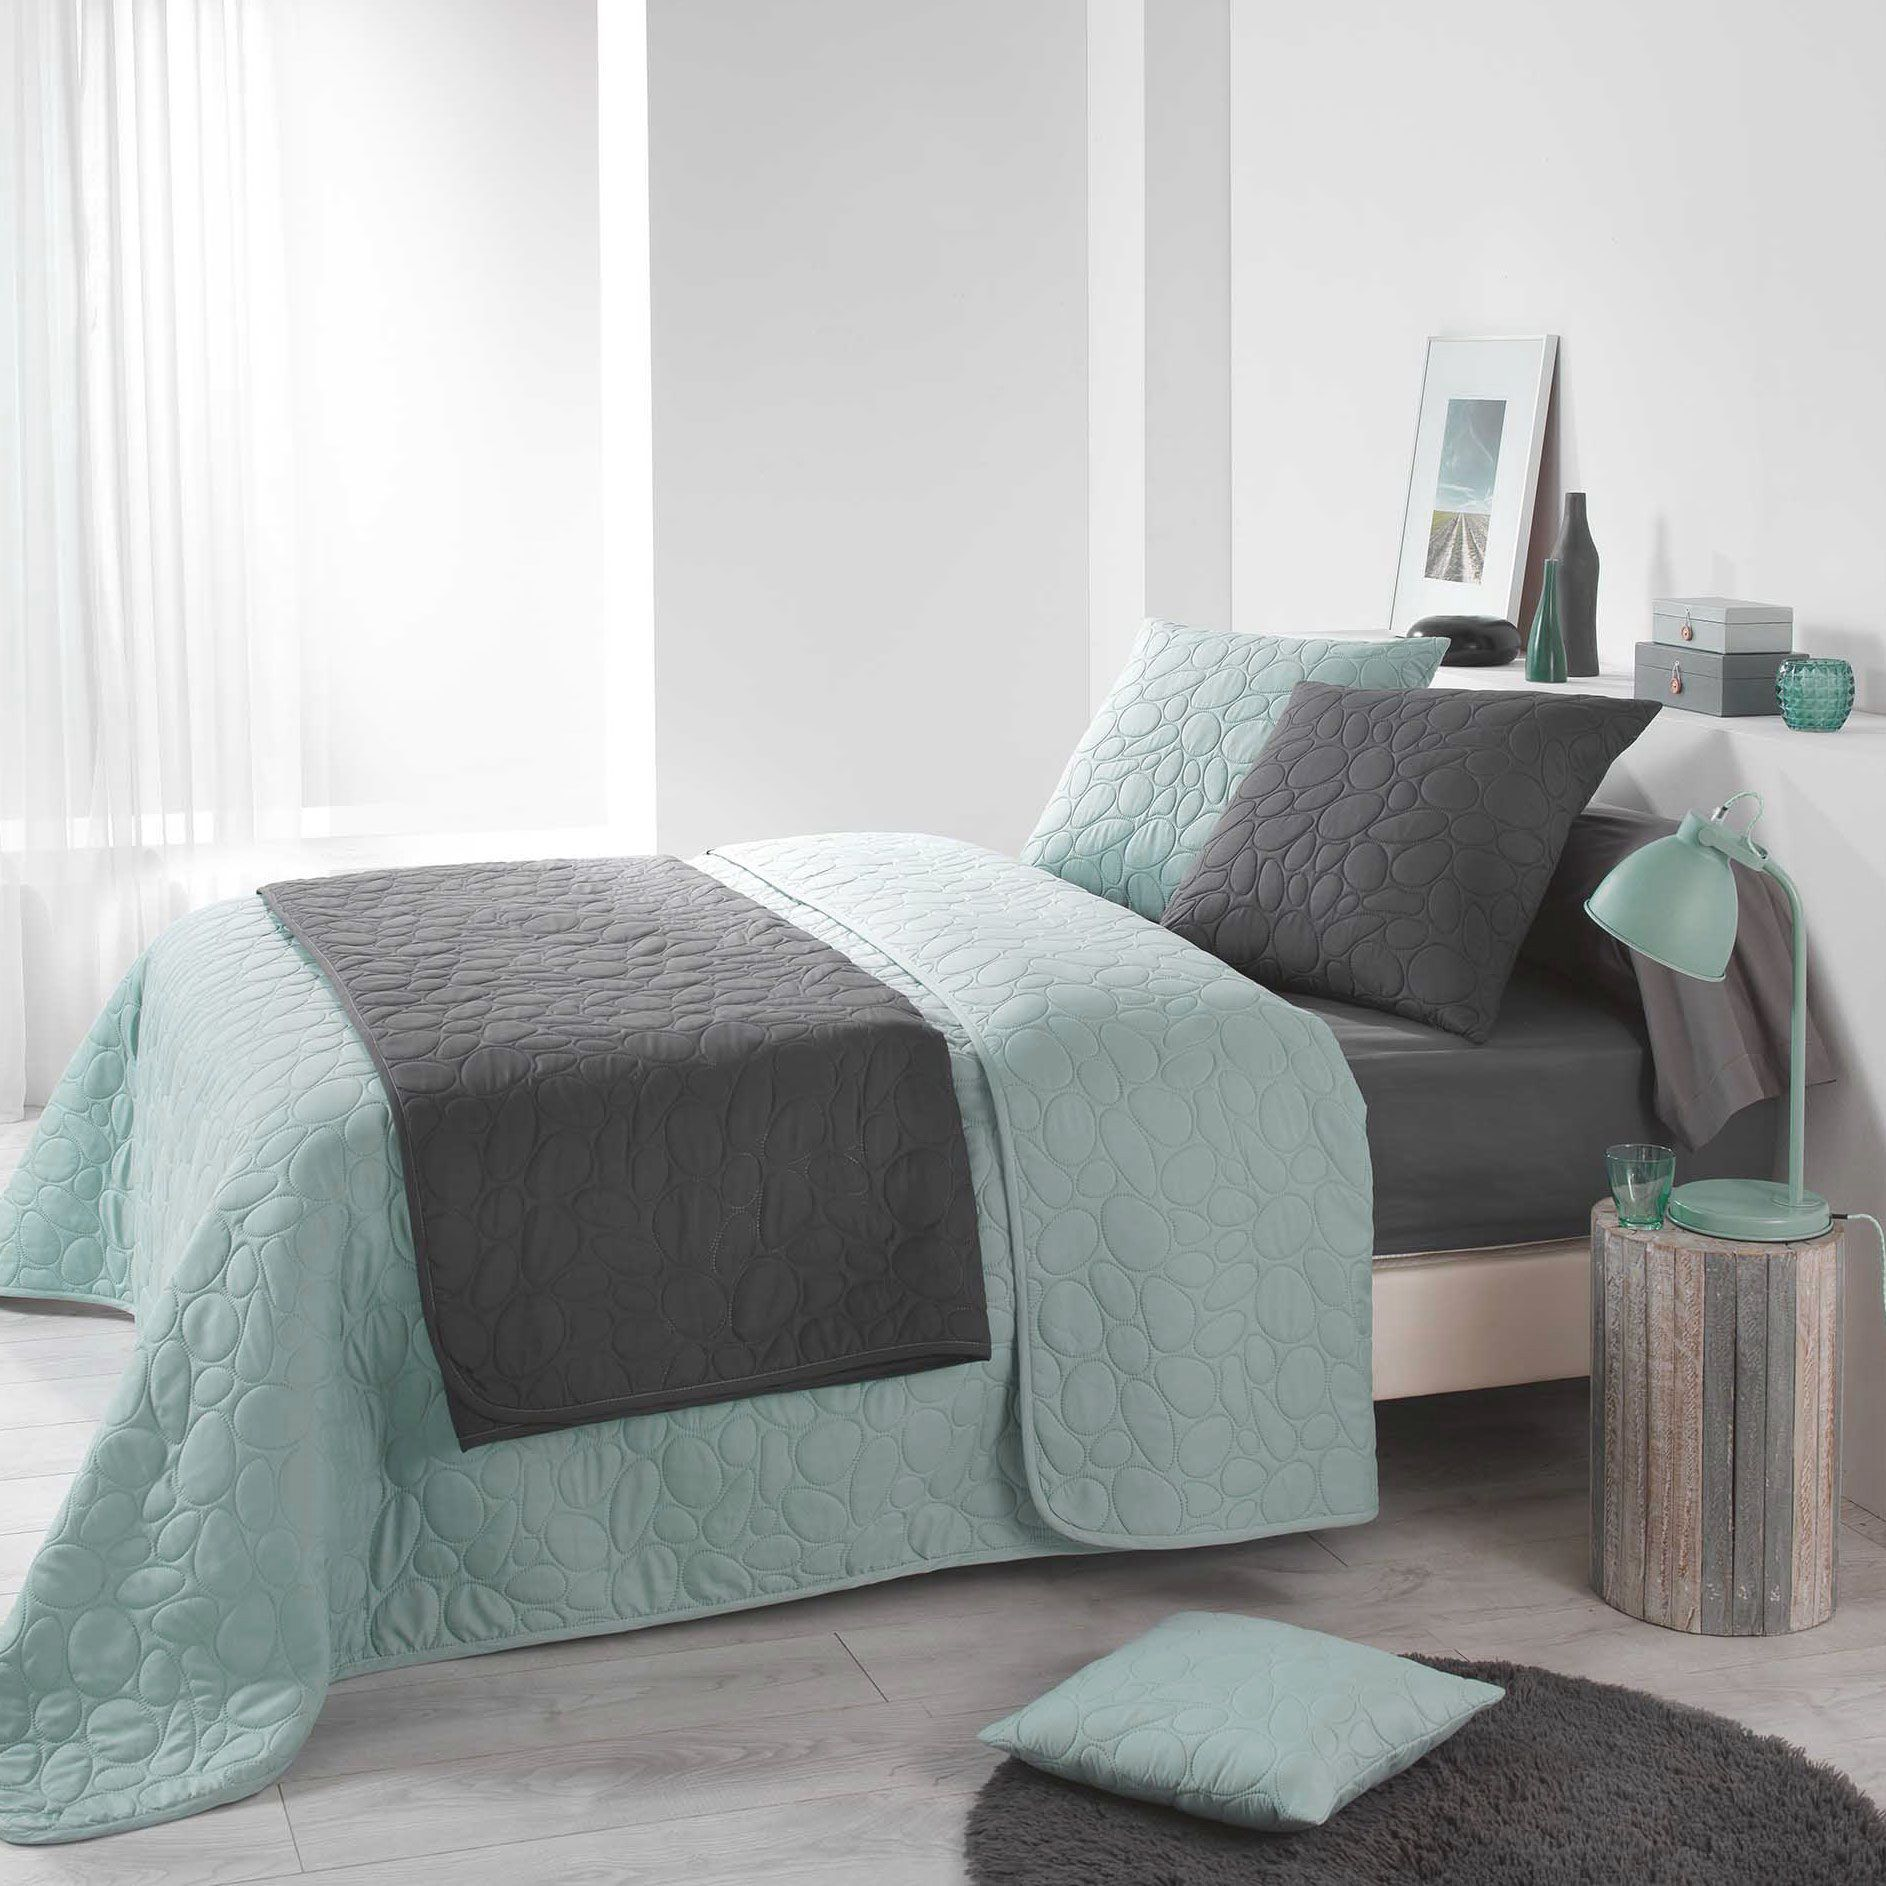 couvre lit 220 x 240 cm dolina vert menthe couvre lit boutis eminza. Black Bedroom Furniture Sets. Home Design Ideas